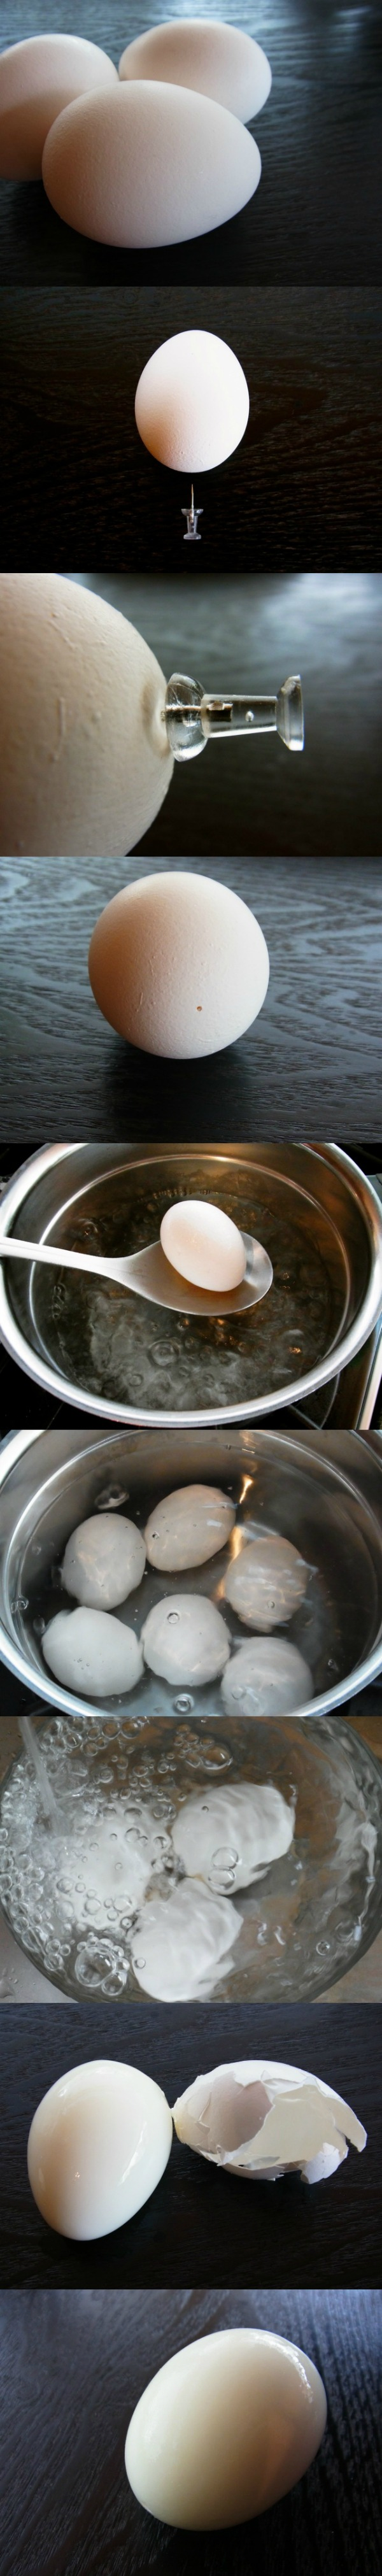 boiled-egg-hack.jpg